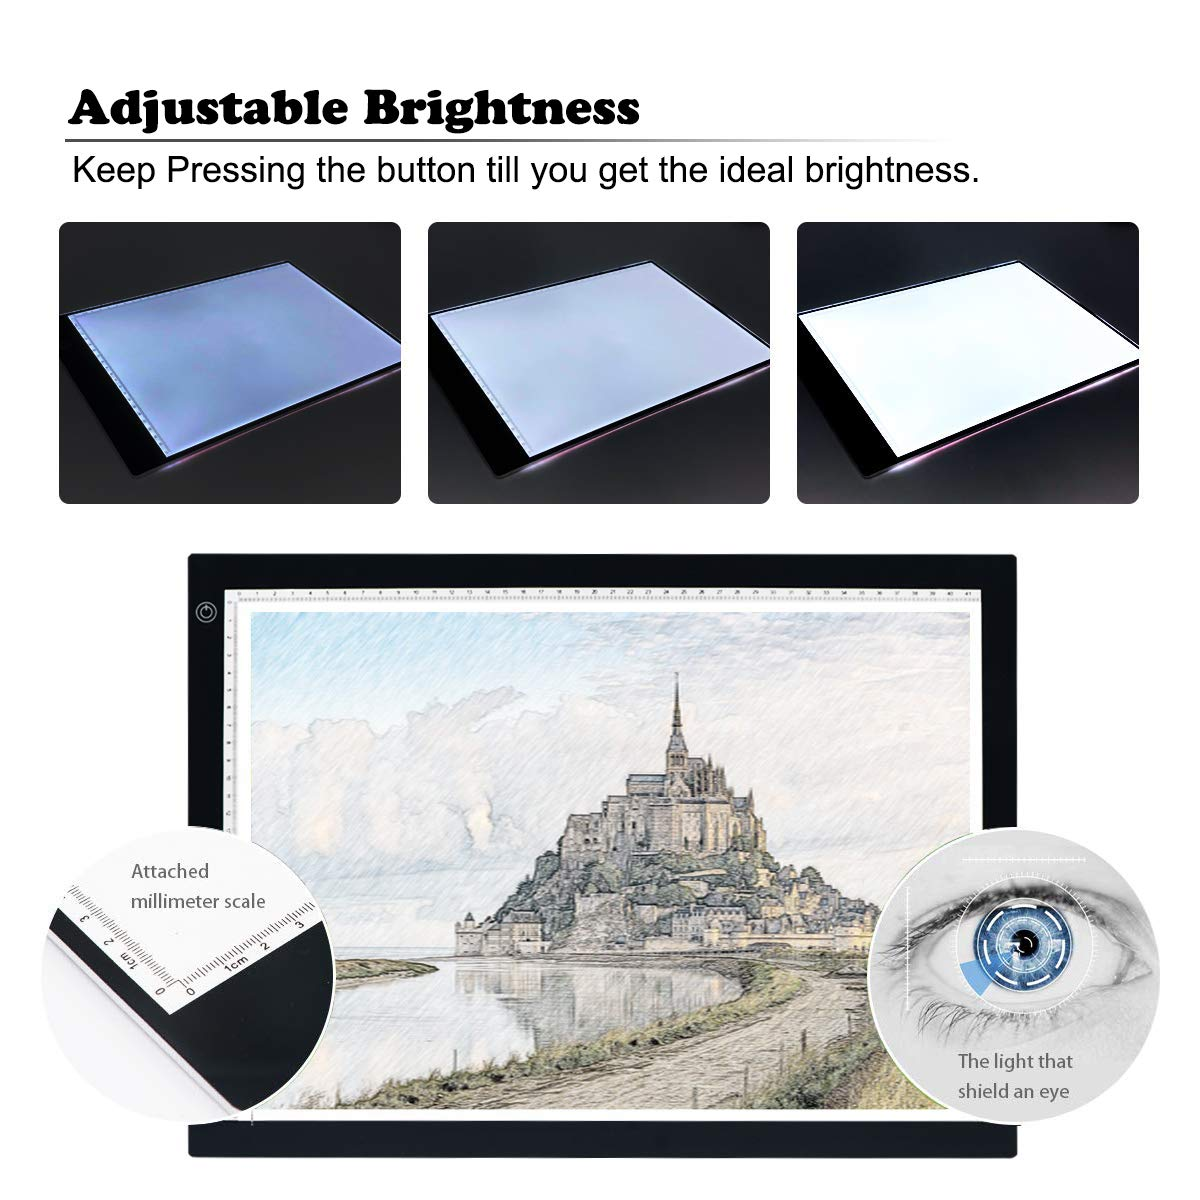 A4 Ultra-thin Tracing Light Board IKYE Portable LED Light Box Tracer Dimmable Brightness LED Artcraft Tracing Light Box Light Pad for Artists Drawing Sketching Animation Stencilling X-ray Viewing